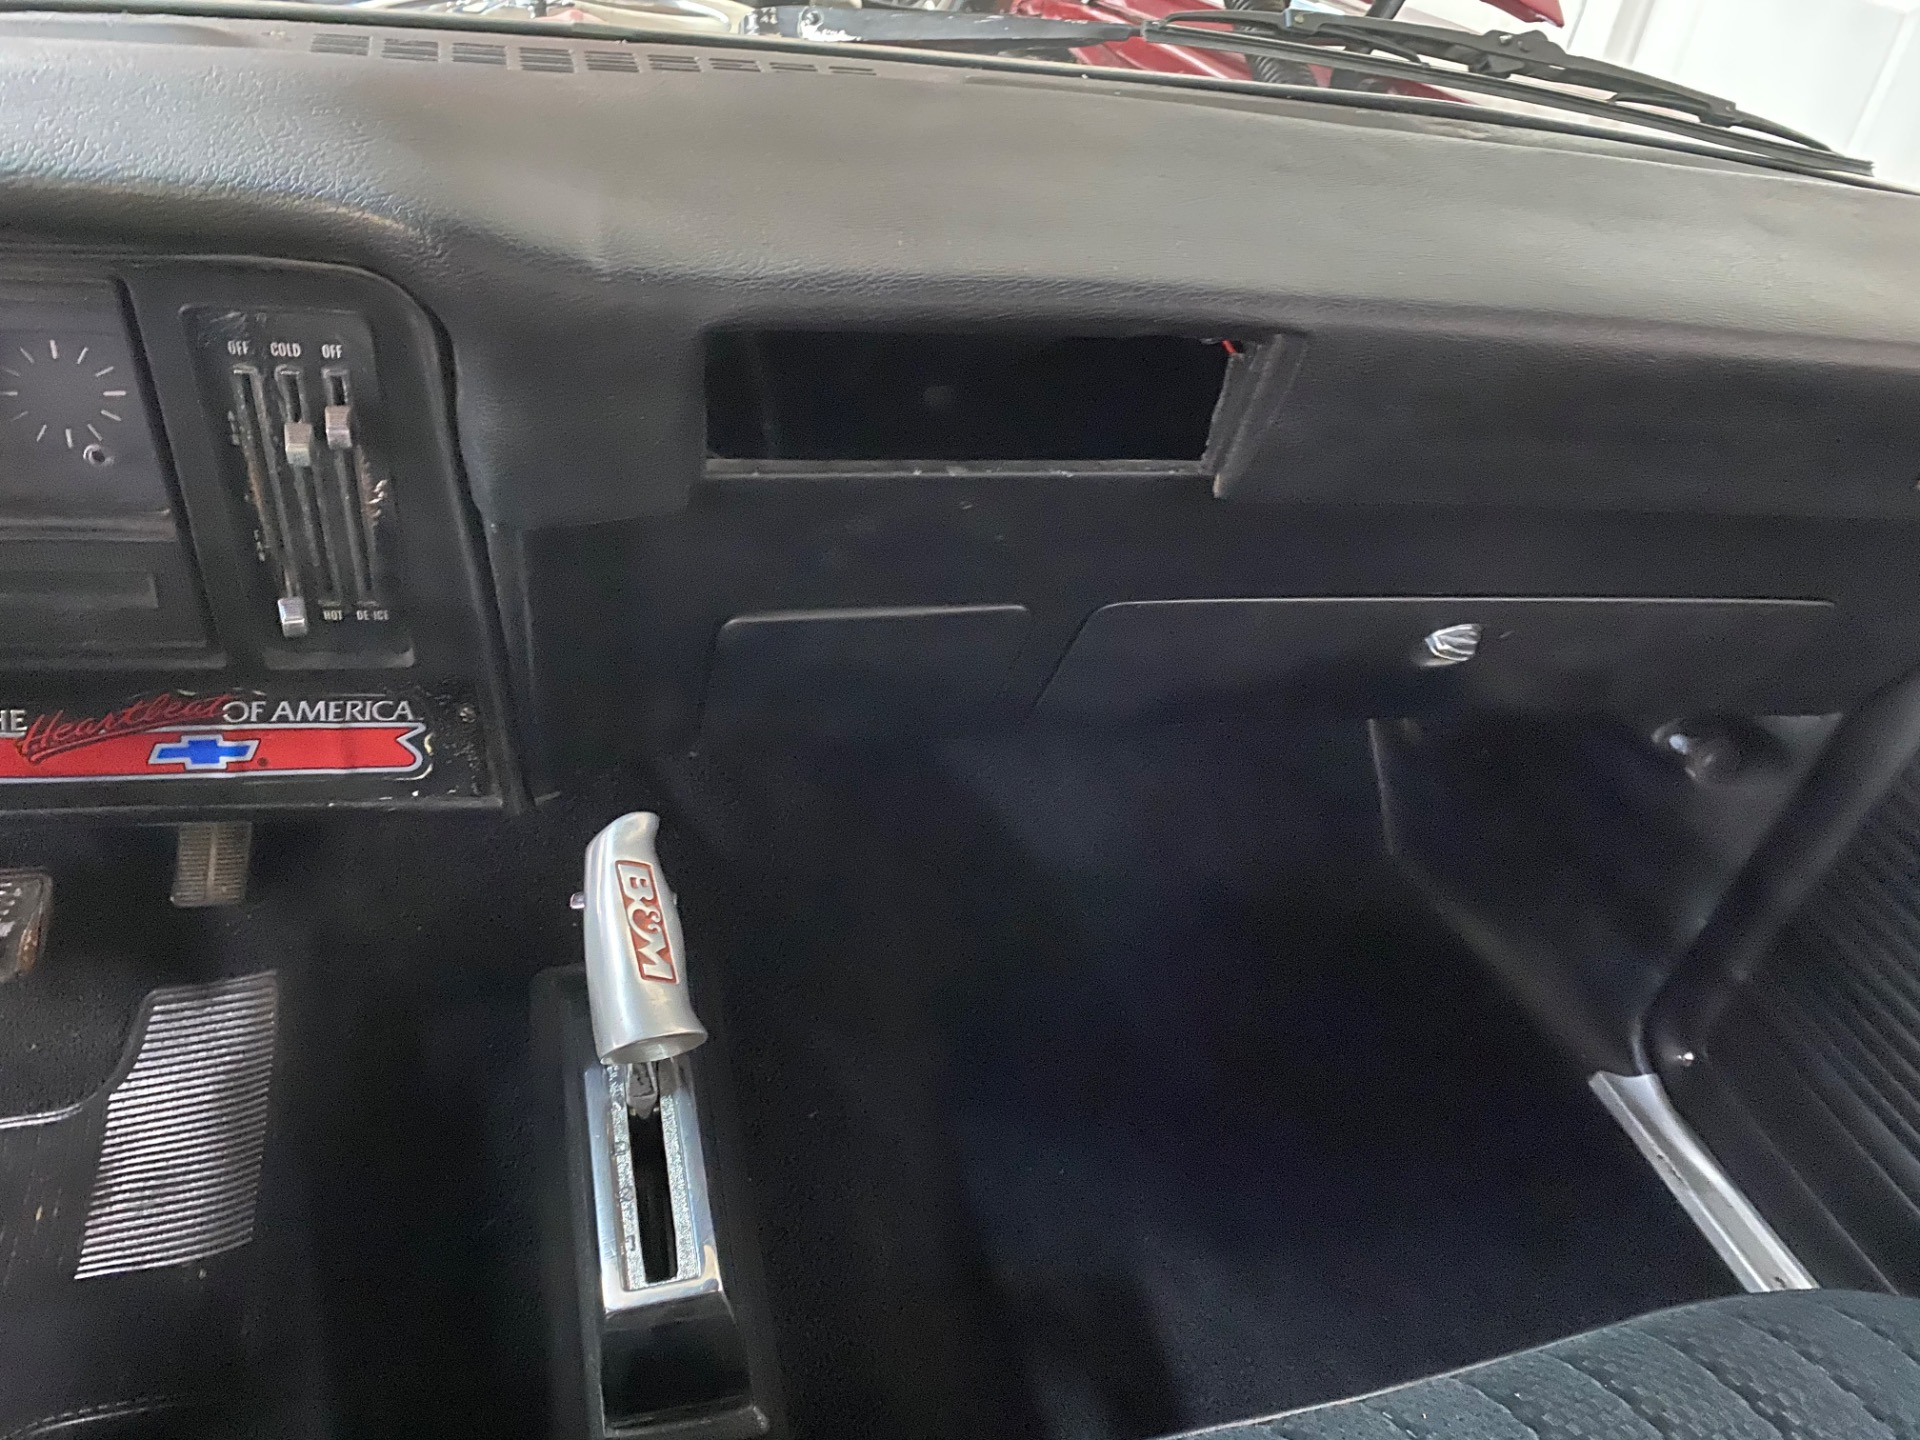 Used 1972 Chevrolet Nova -SS TRIBUTE - 350 V8 - LOW BUDGET FUN - SEE VIDEO | Mundelein, IL